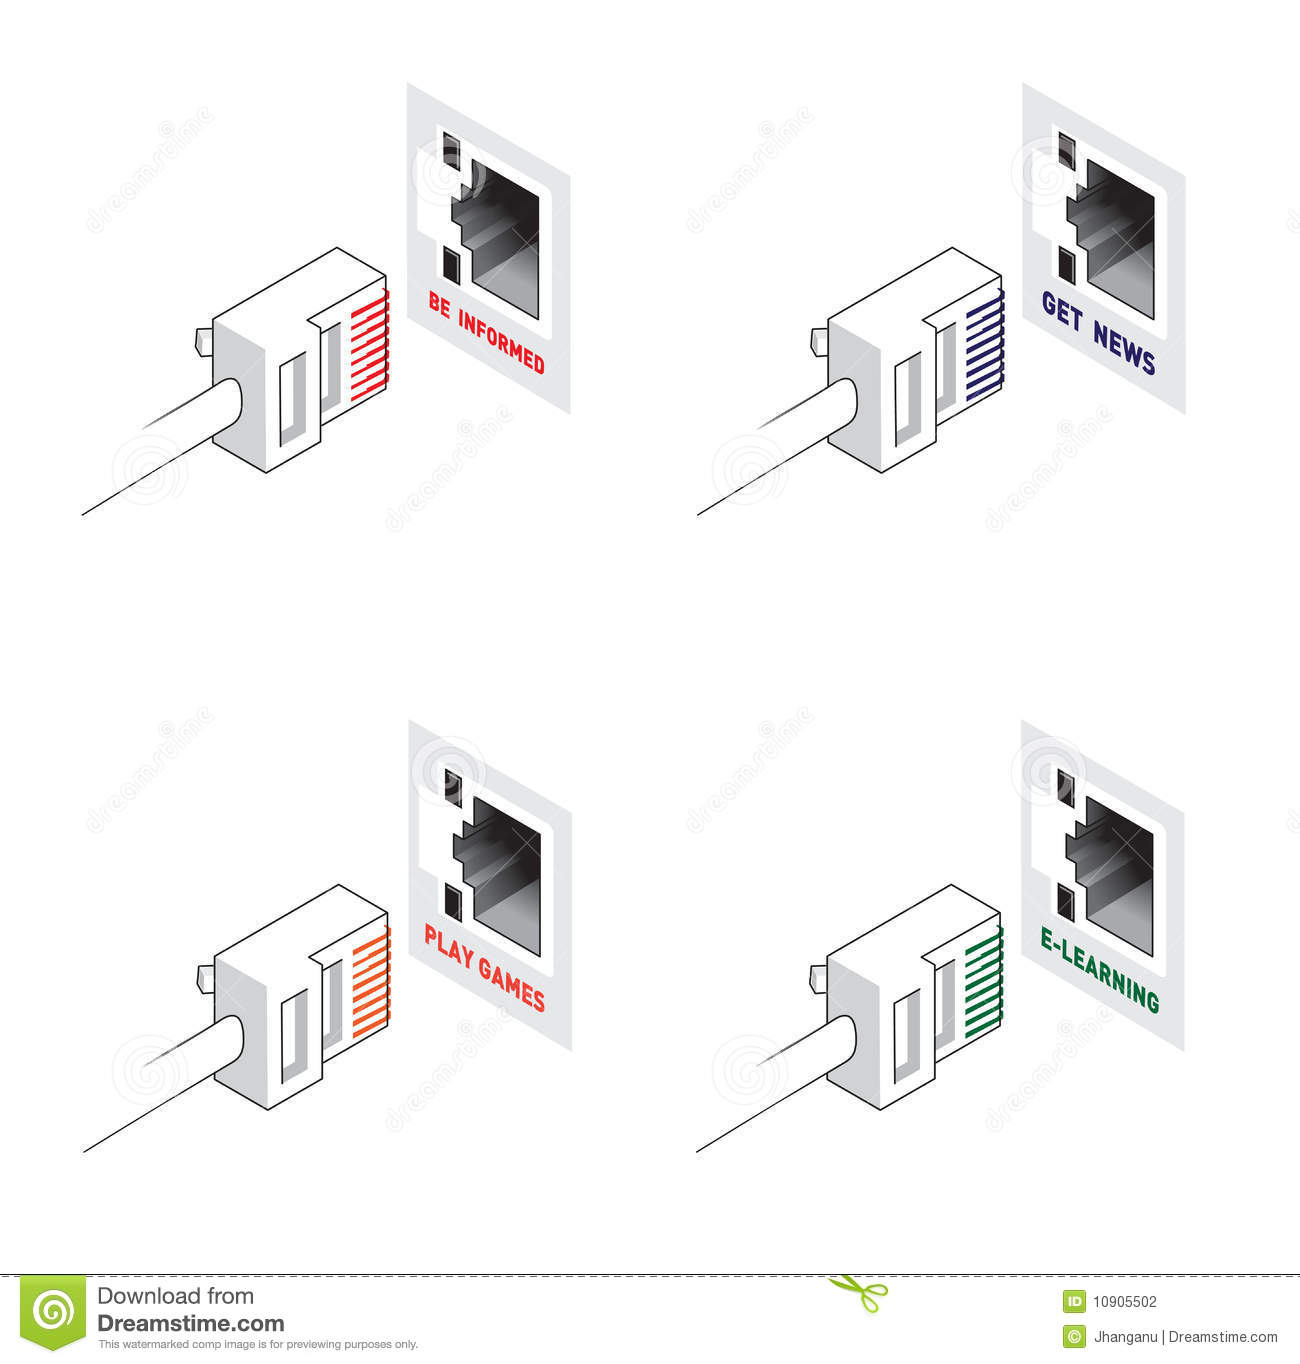 Play Games, Elearning, Get News, Be Infomed Vector Stock